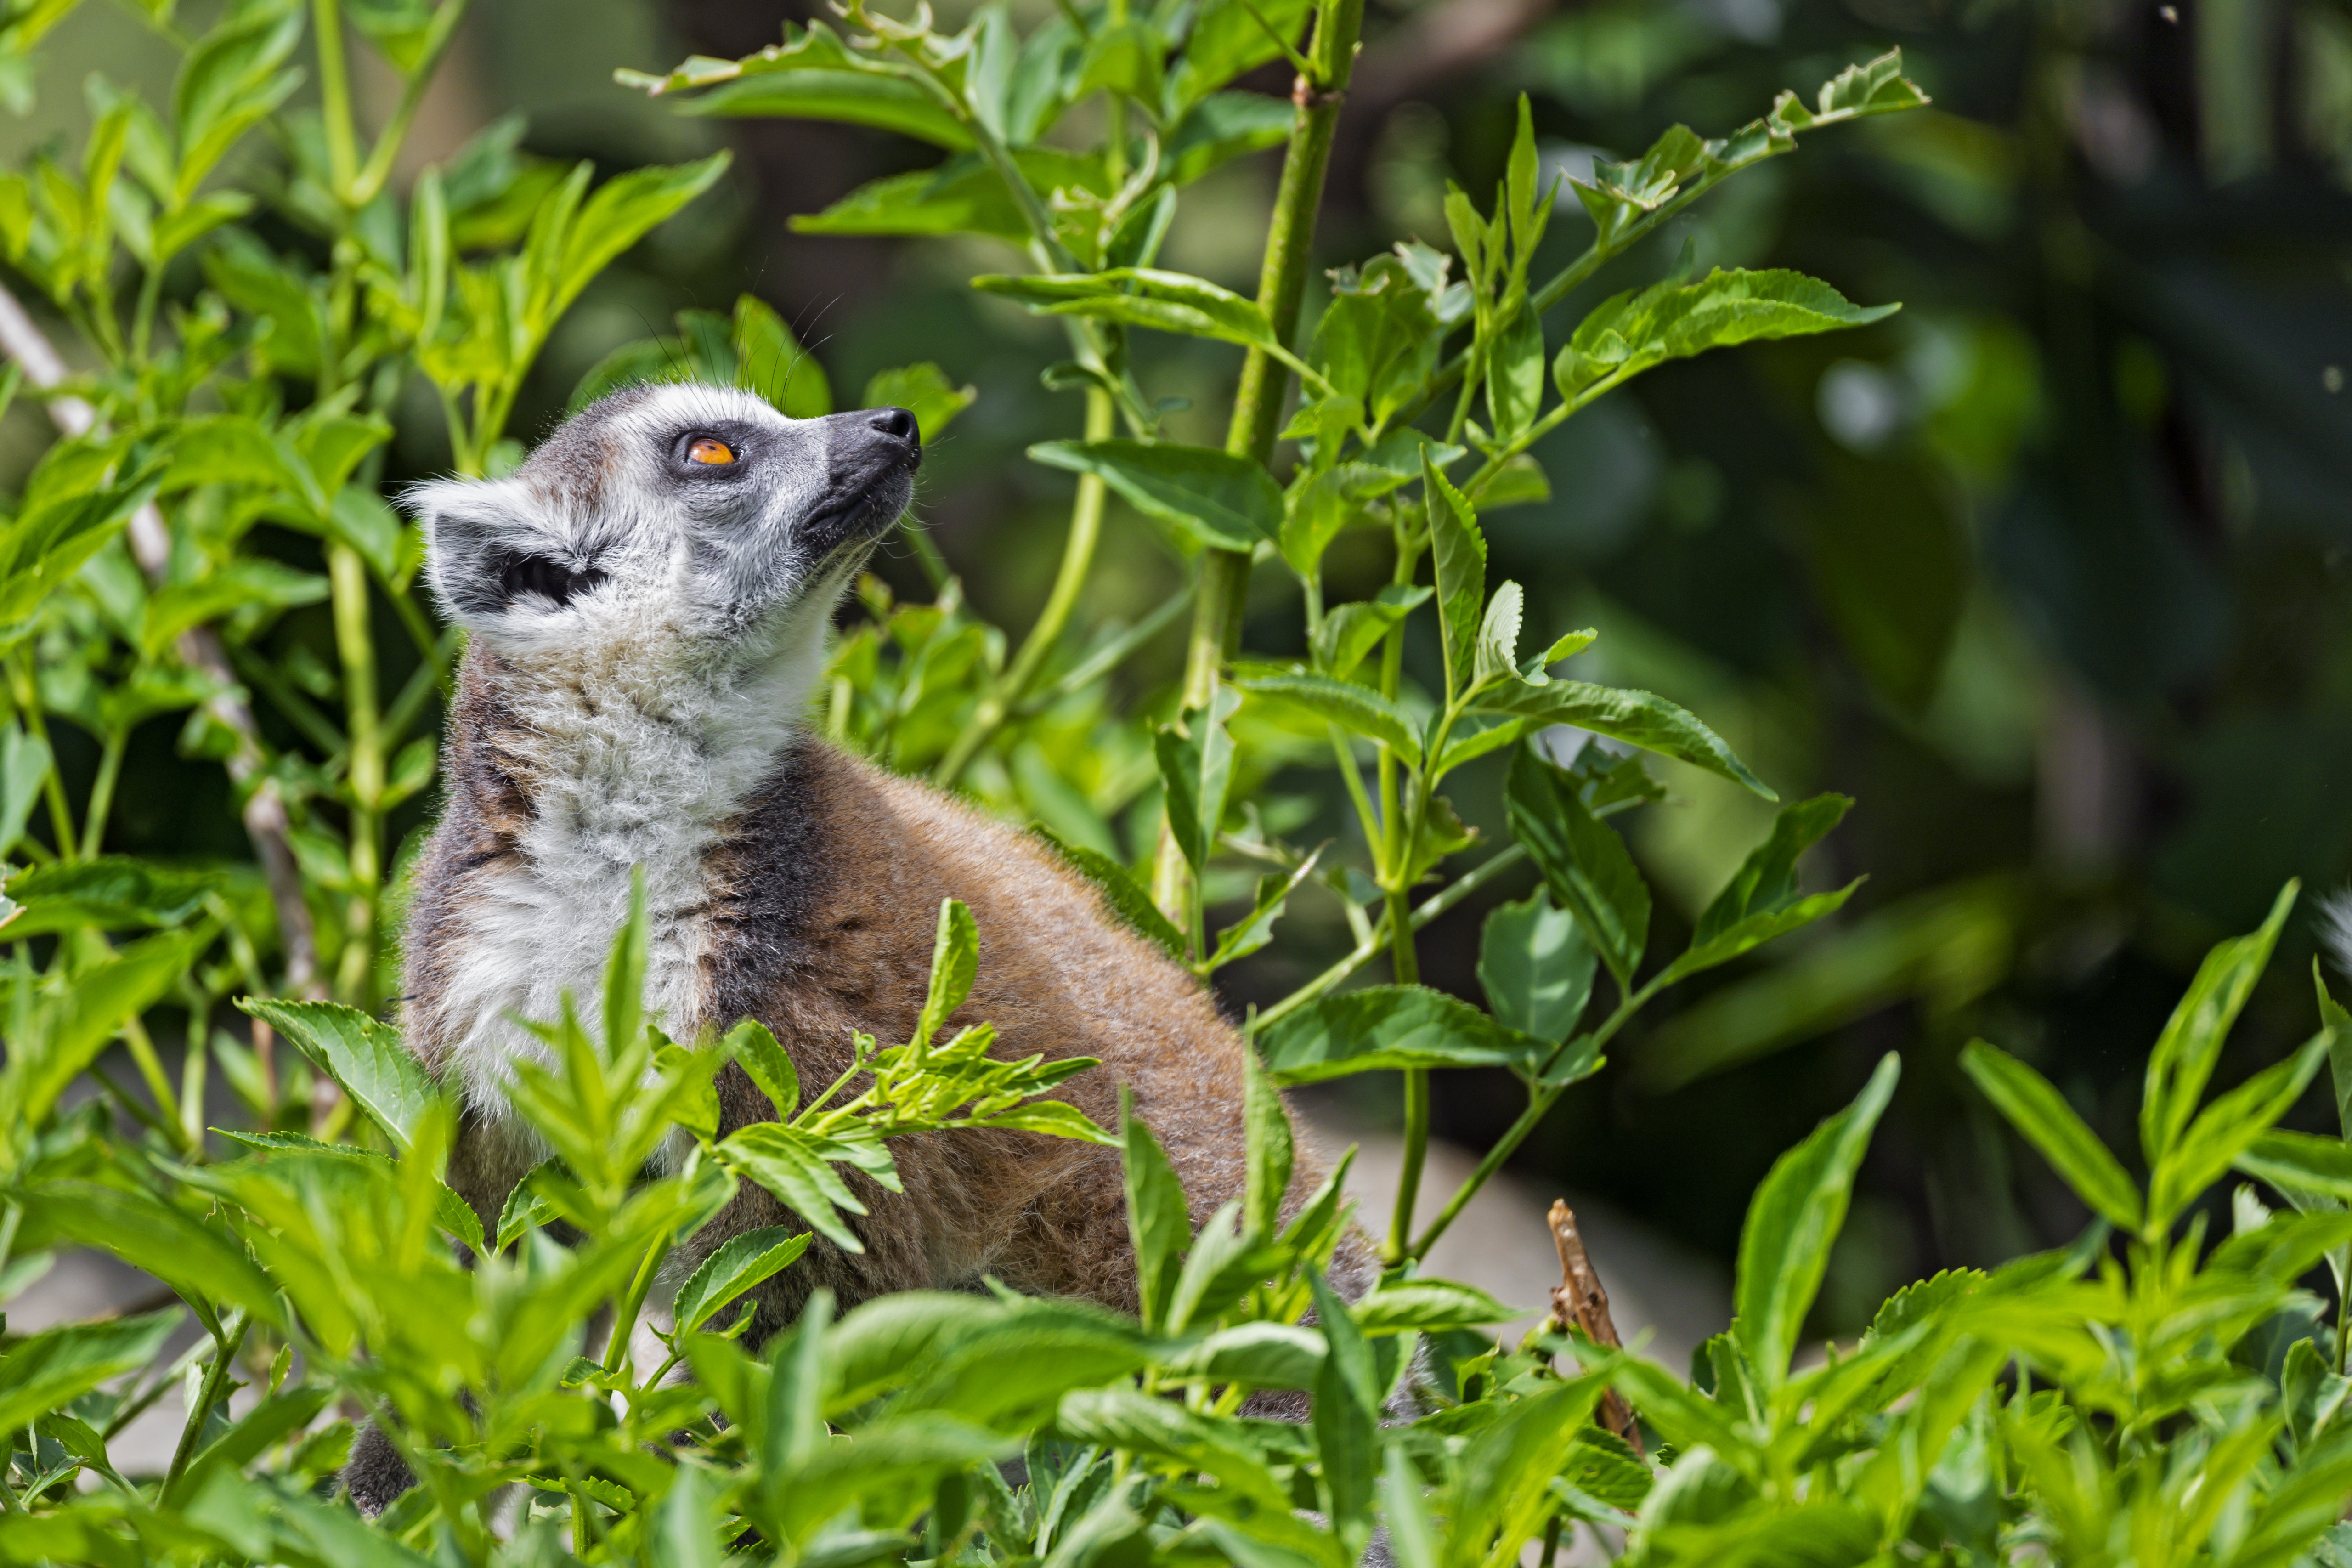 88669 download wallpaper Animals, Lemur, Animal, Profile, Grass screensavers and pictures for free